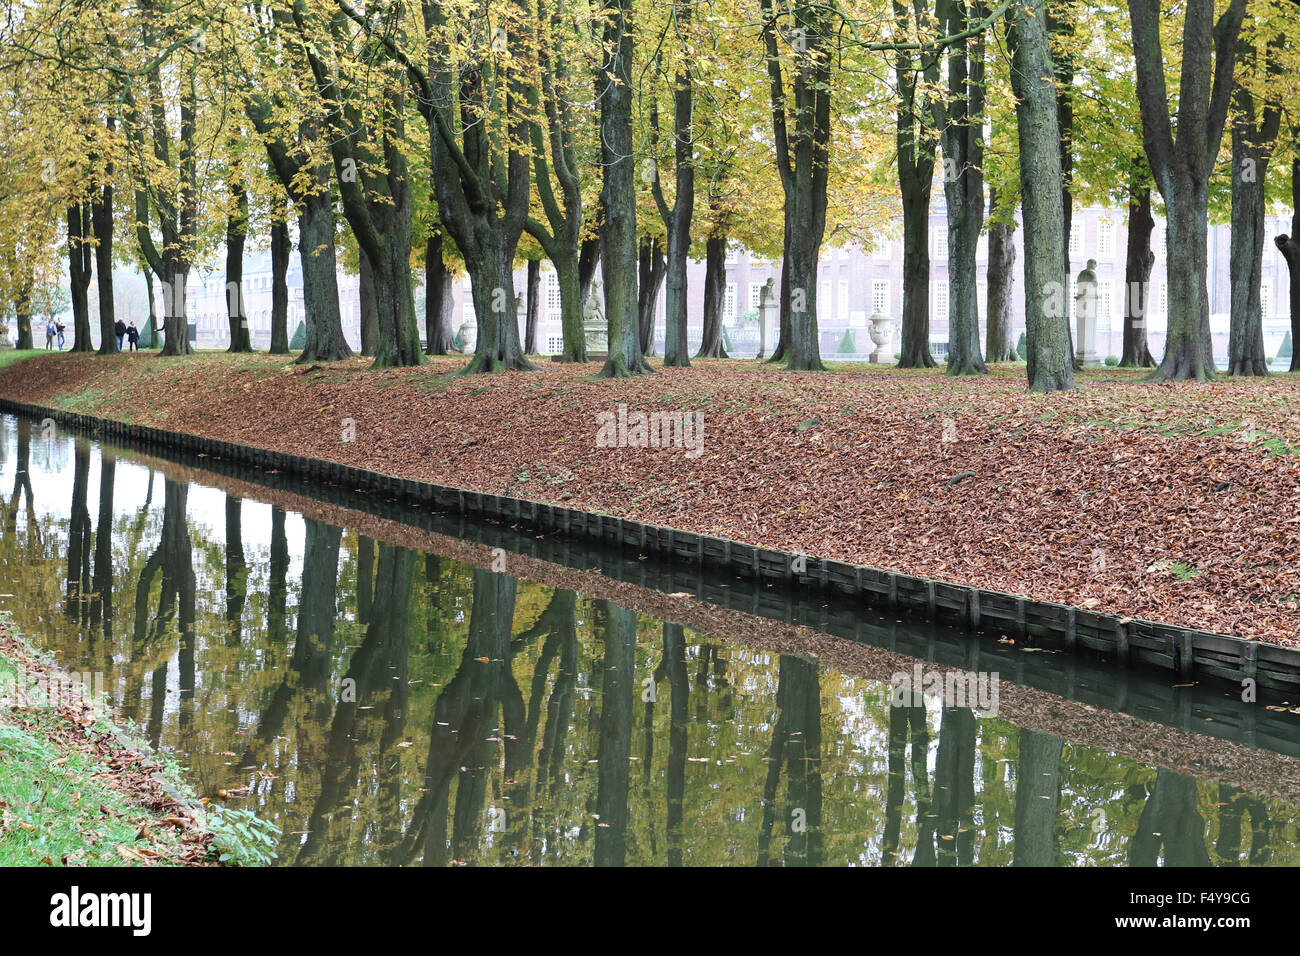 Nordkirchen, Germany. 24 October 2015. Autumn at the 'Versailles of Westphalia', the stunning baroque palace - Stock Image